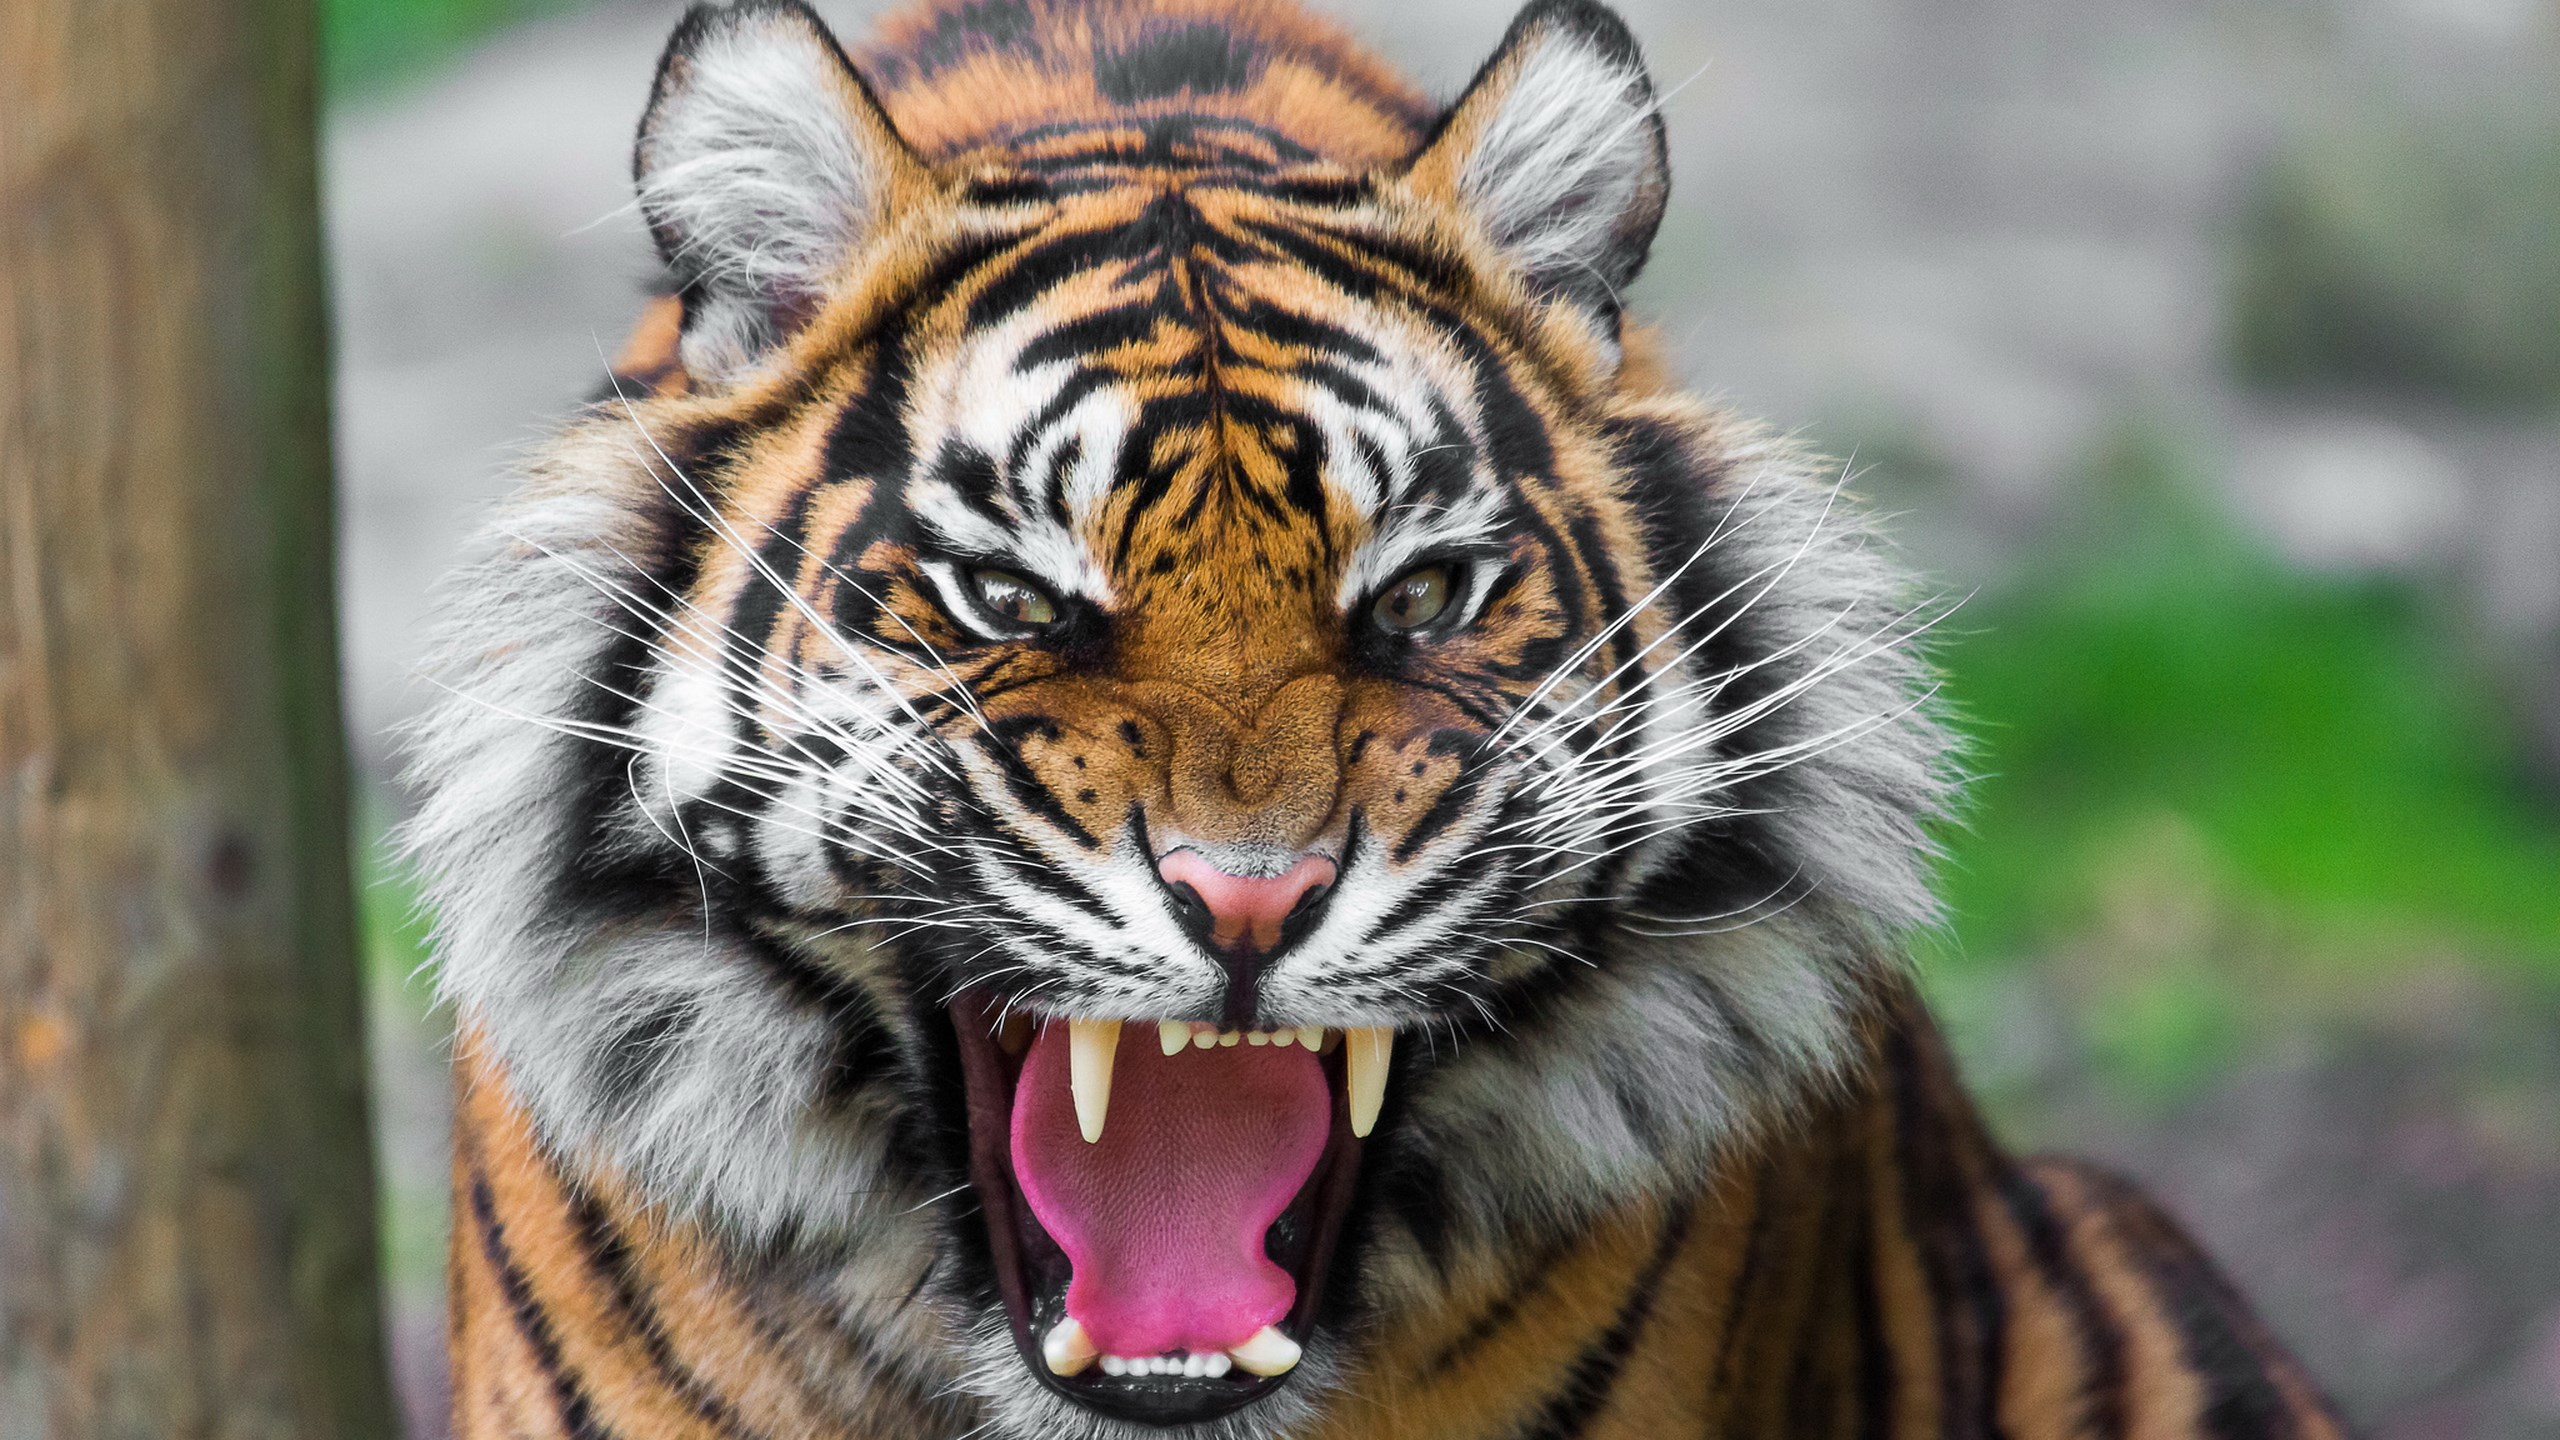 Free Download 1055 Roaring Tiger Wallpaper Hd Tiger Wallpaper 4k Tiger Images 2560x1440 For Your Desktop Mobile Tablet Explore 19 4k Tiger Wallpapers 4k Tiger Wallpapers Tiger Wallpapers Wallpaper Tiger